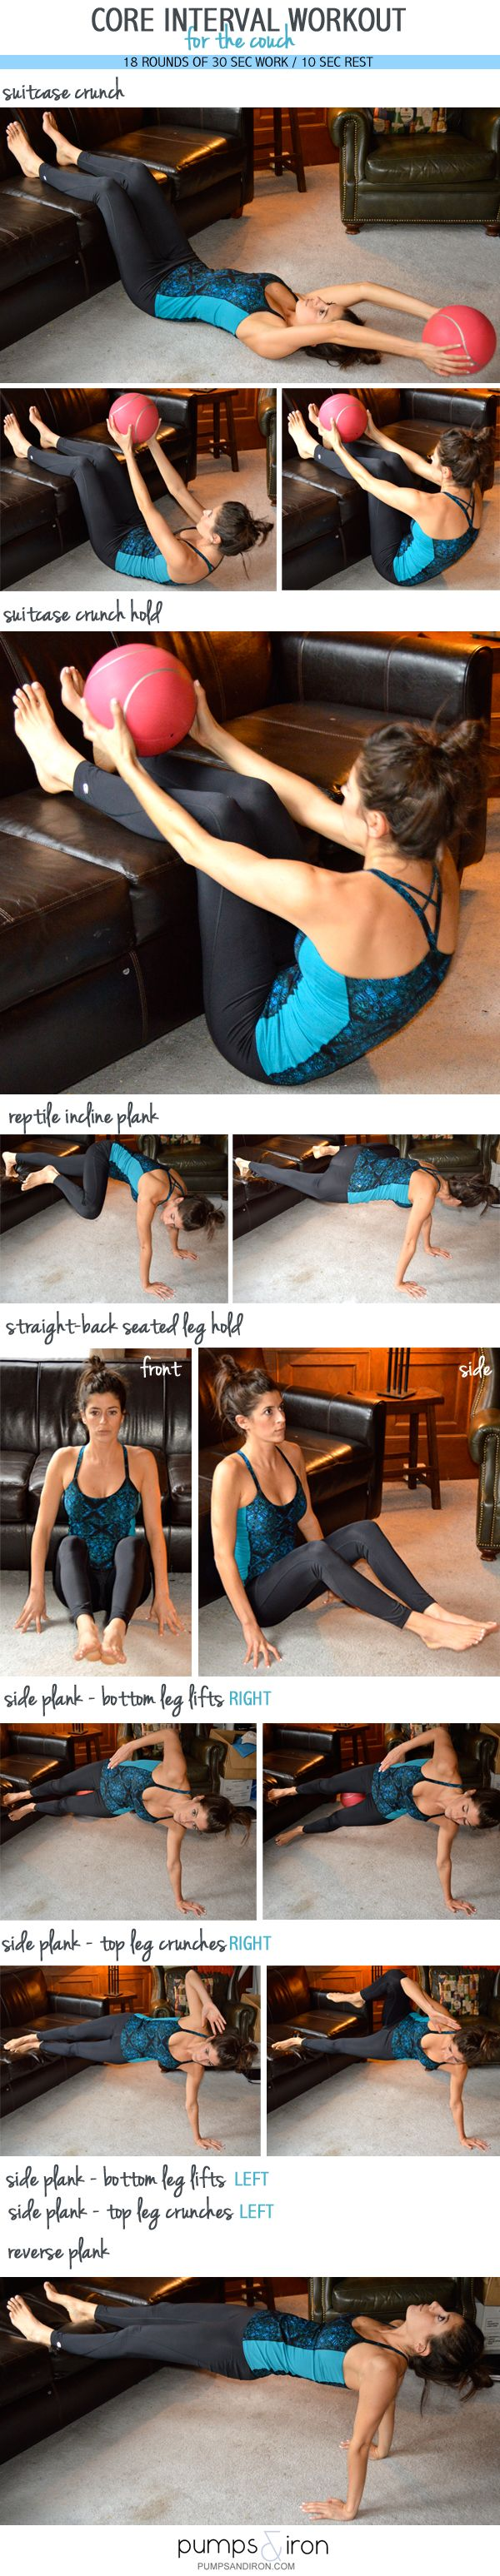 Great ideas for some good core workouts http://thepageantplanet.com/category/diet-and-exercise/